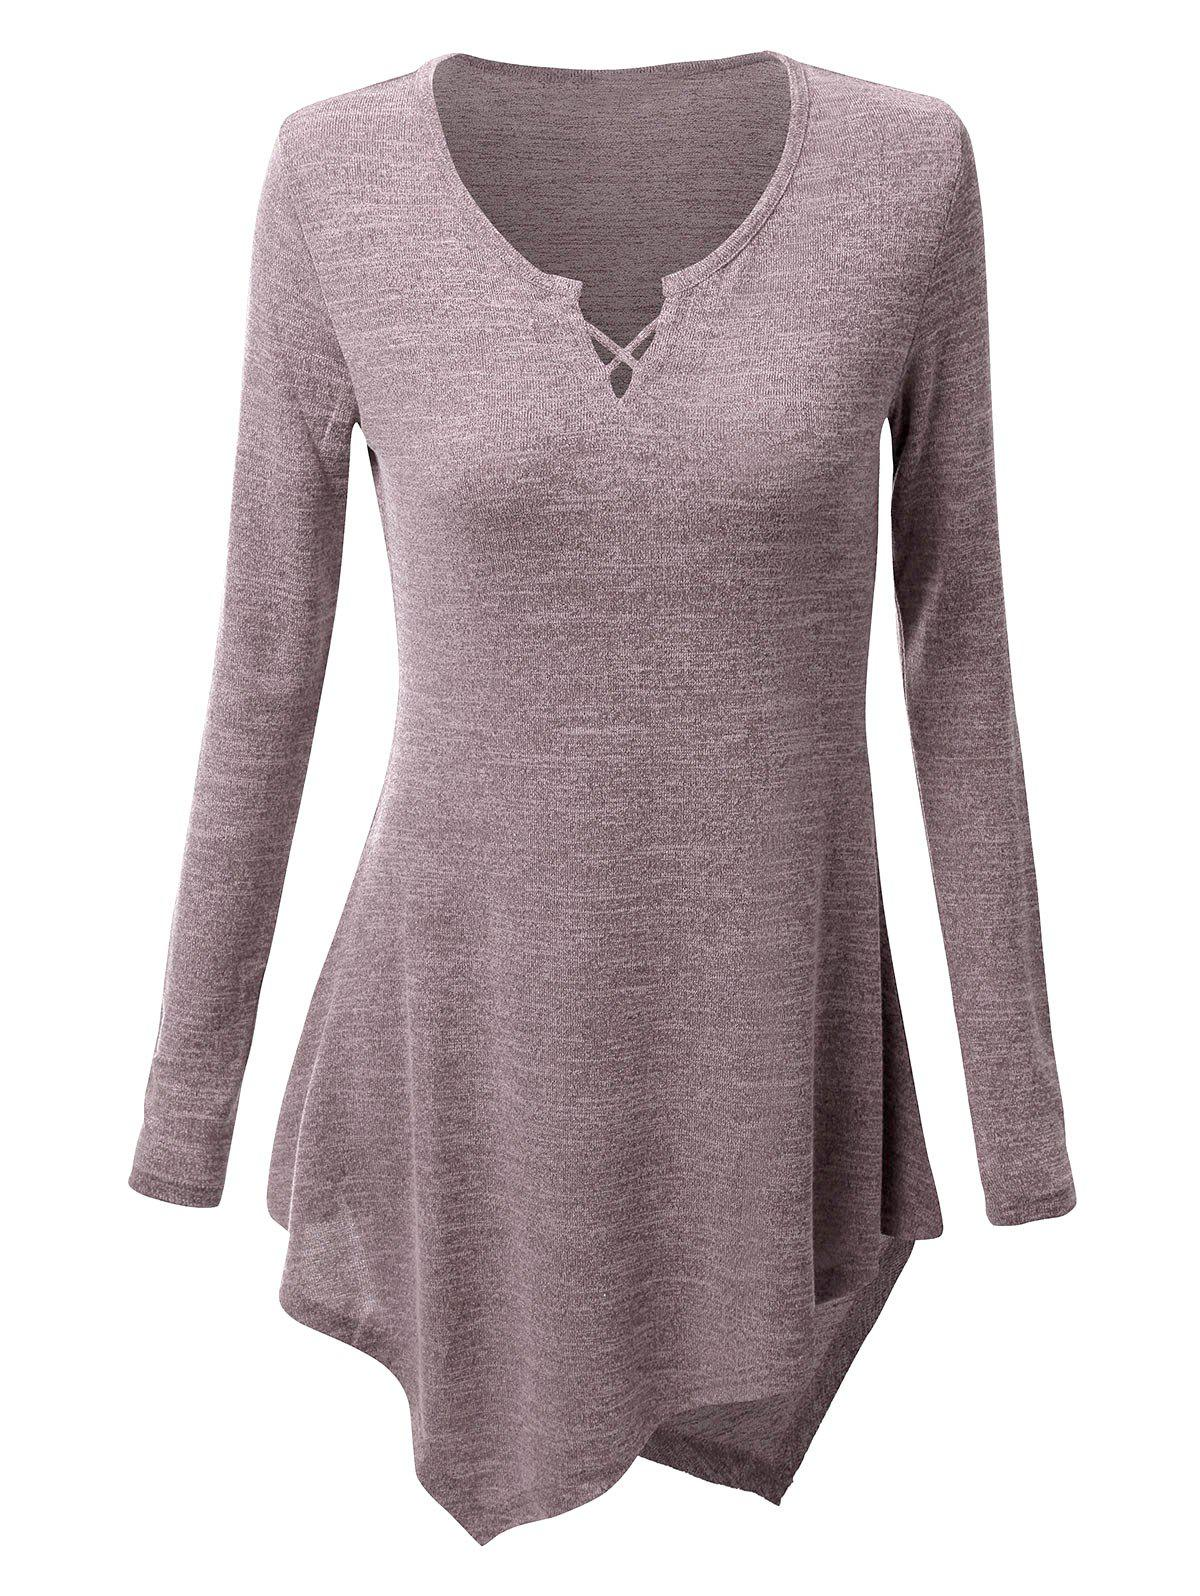 Chic Criss-cross Asymmetric Long Sleeve T-shirt